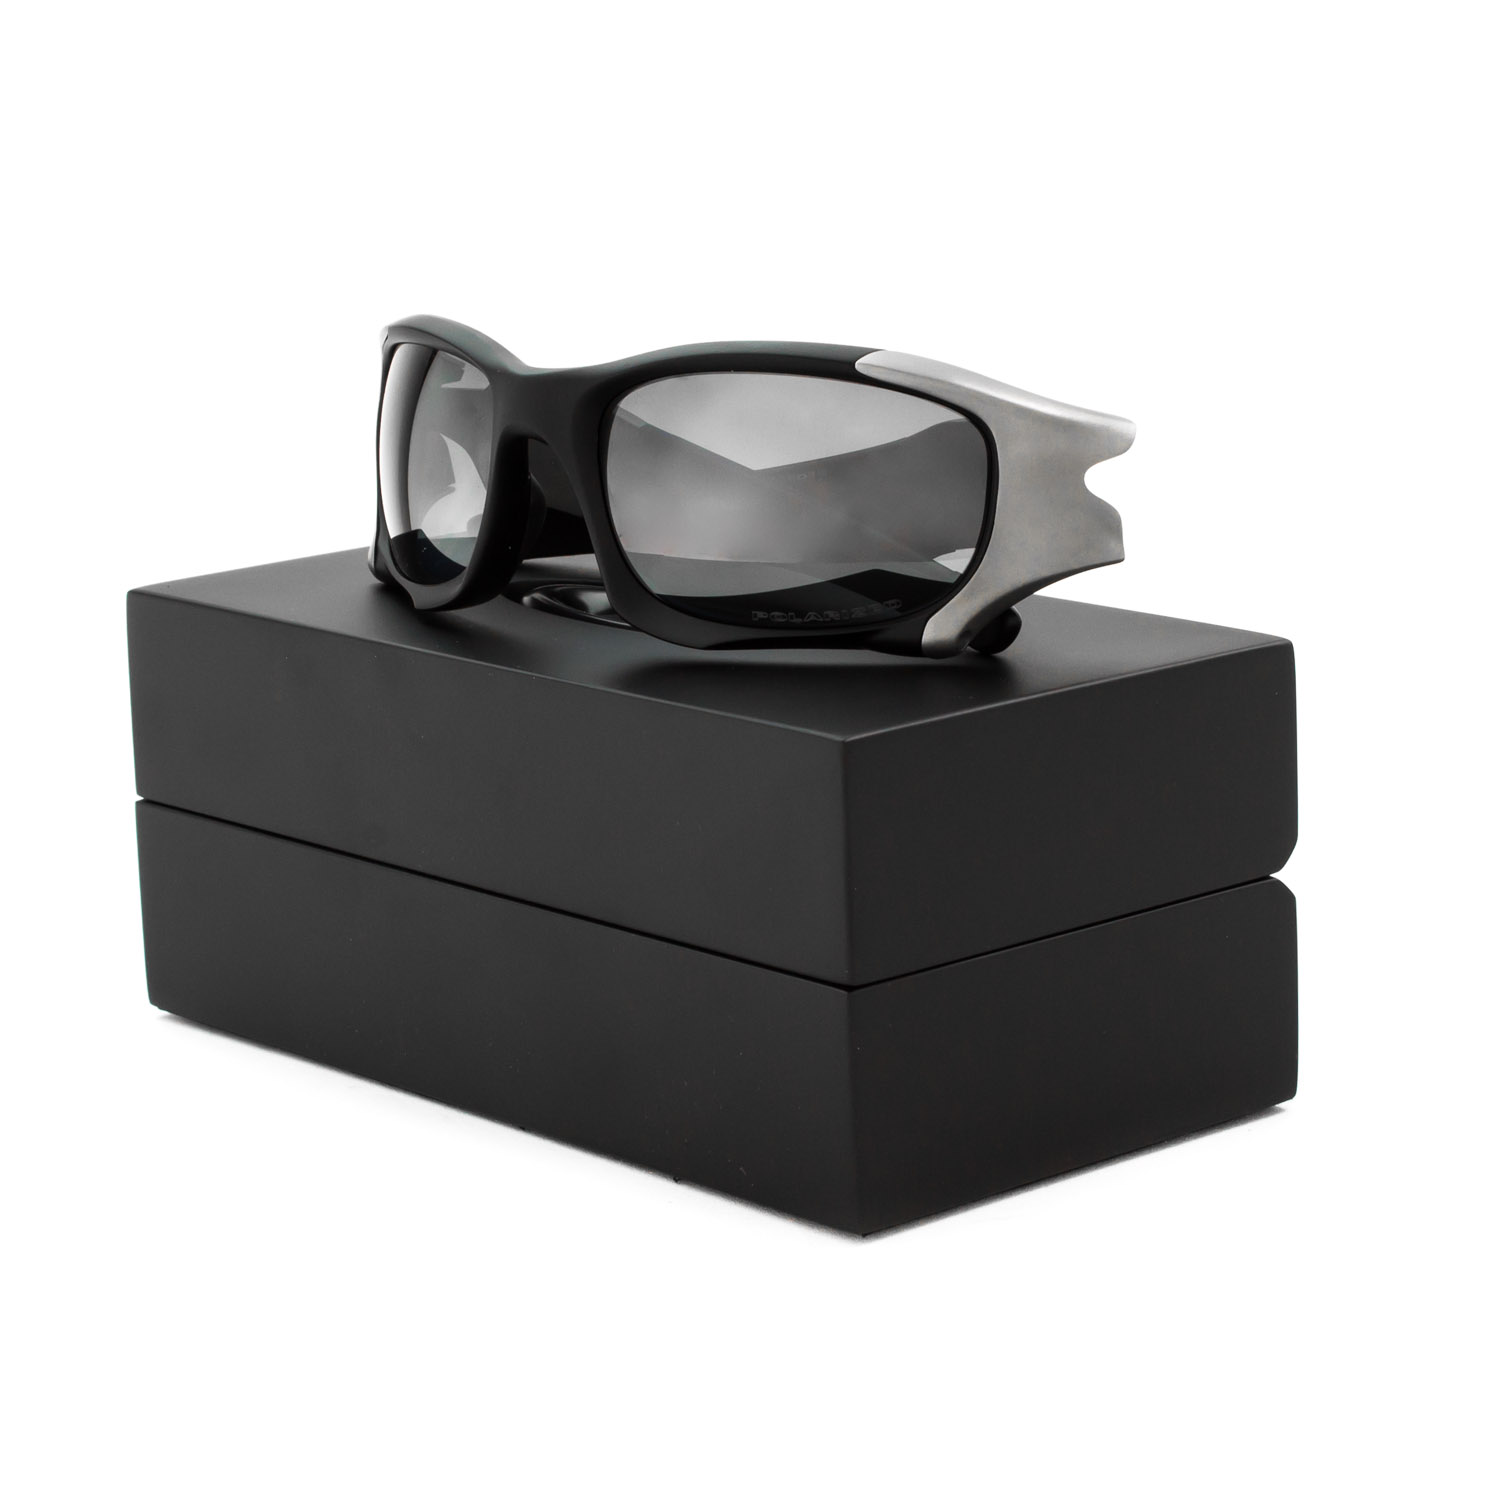 oakley pit boss ygx9  Oakley Pit Boss II Sunglasses OO9137-01 Matte Black / Black Iridium  Polarized